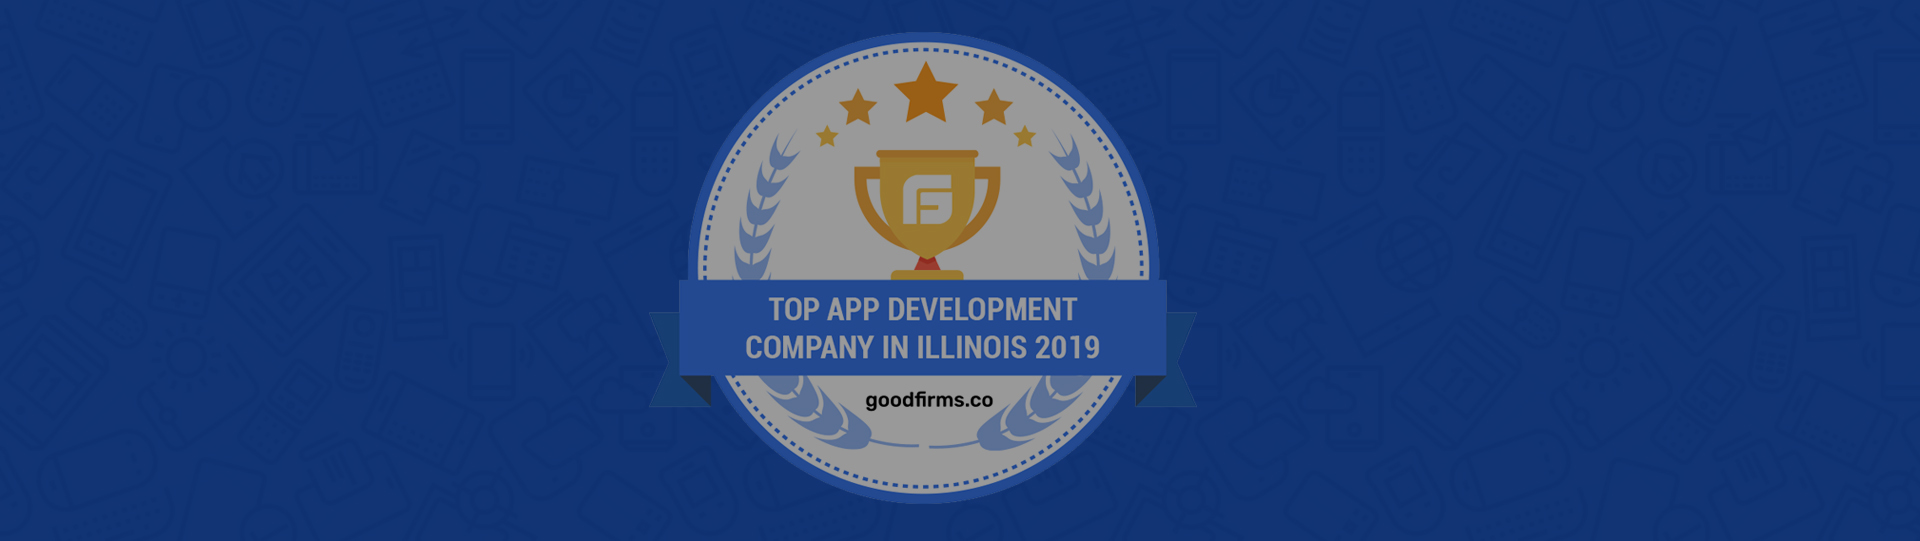 Next Generation Apps Created by NextBrain Wins GoodFirms' Accreditation as a Top Mobile App Development Company in Illinois